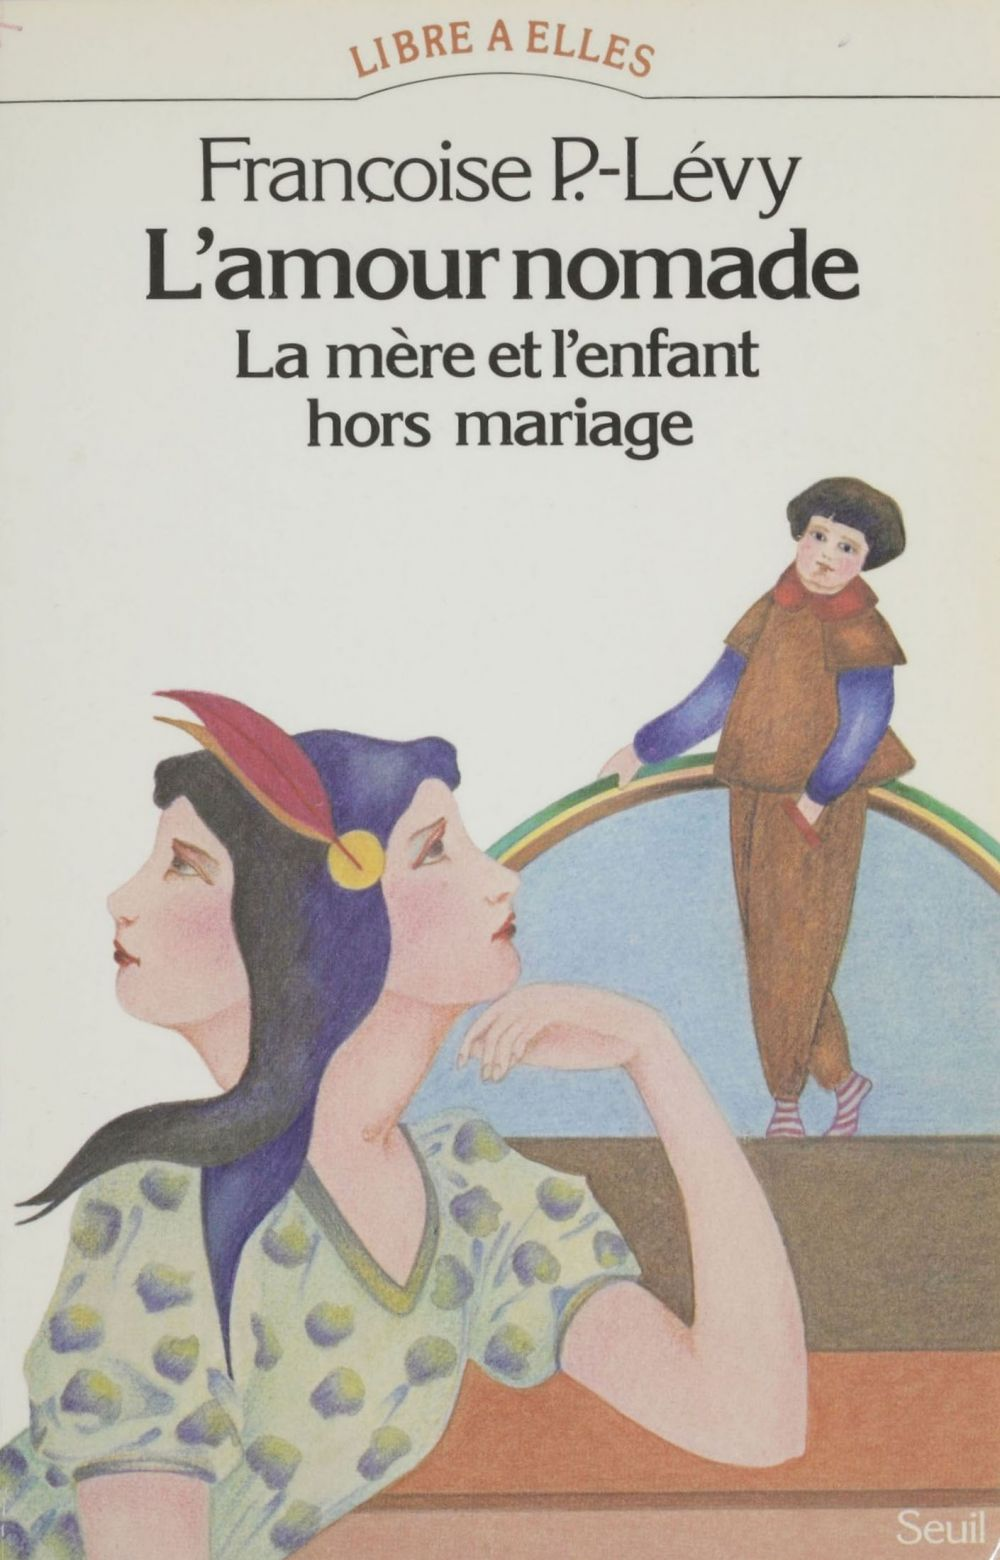 L'Amour nomade